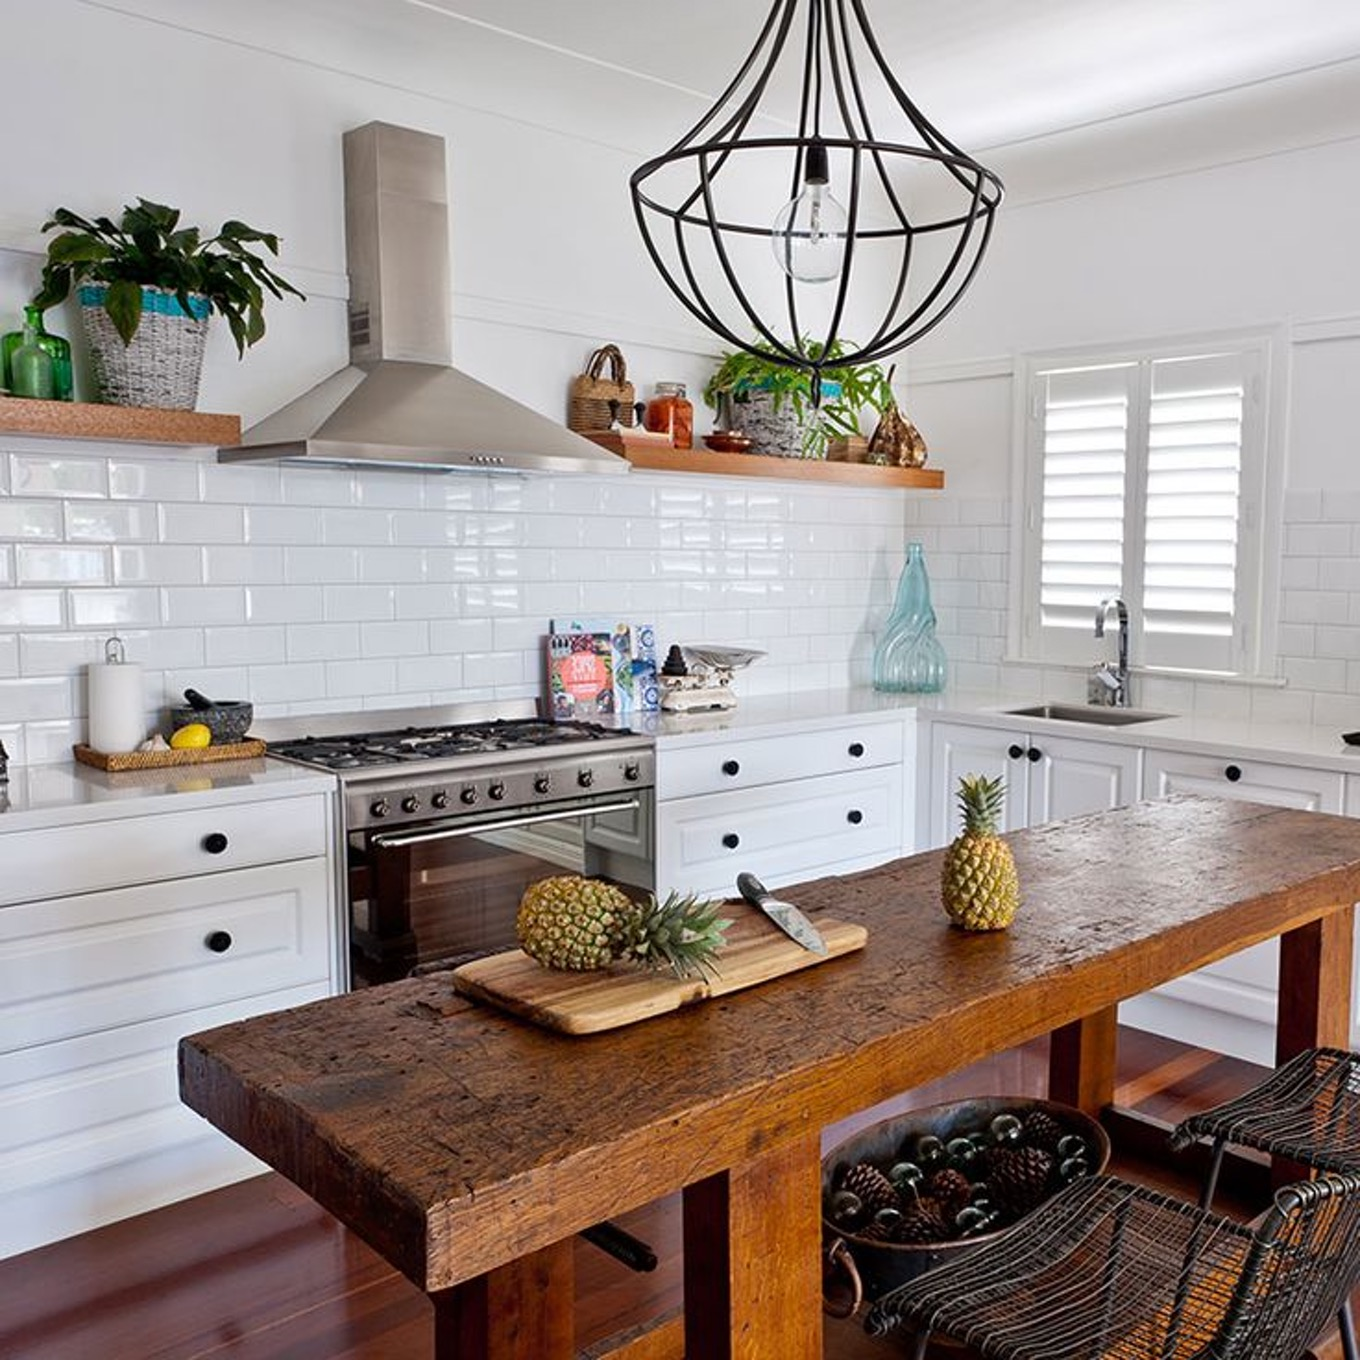 Enthralling Narrow Kitchen Island Of Table Small Ideas Rolling With Seating Acnn Decor